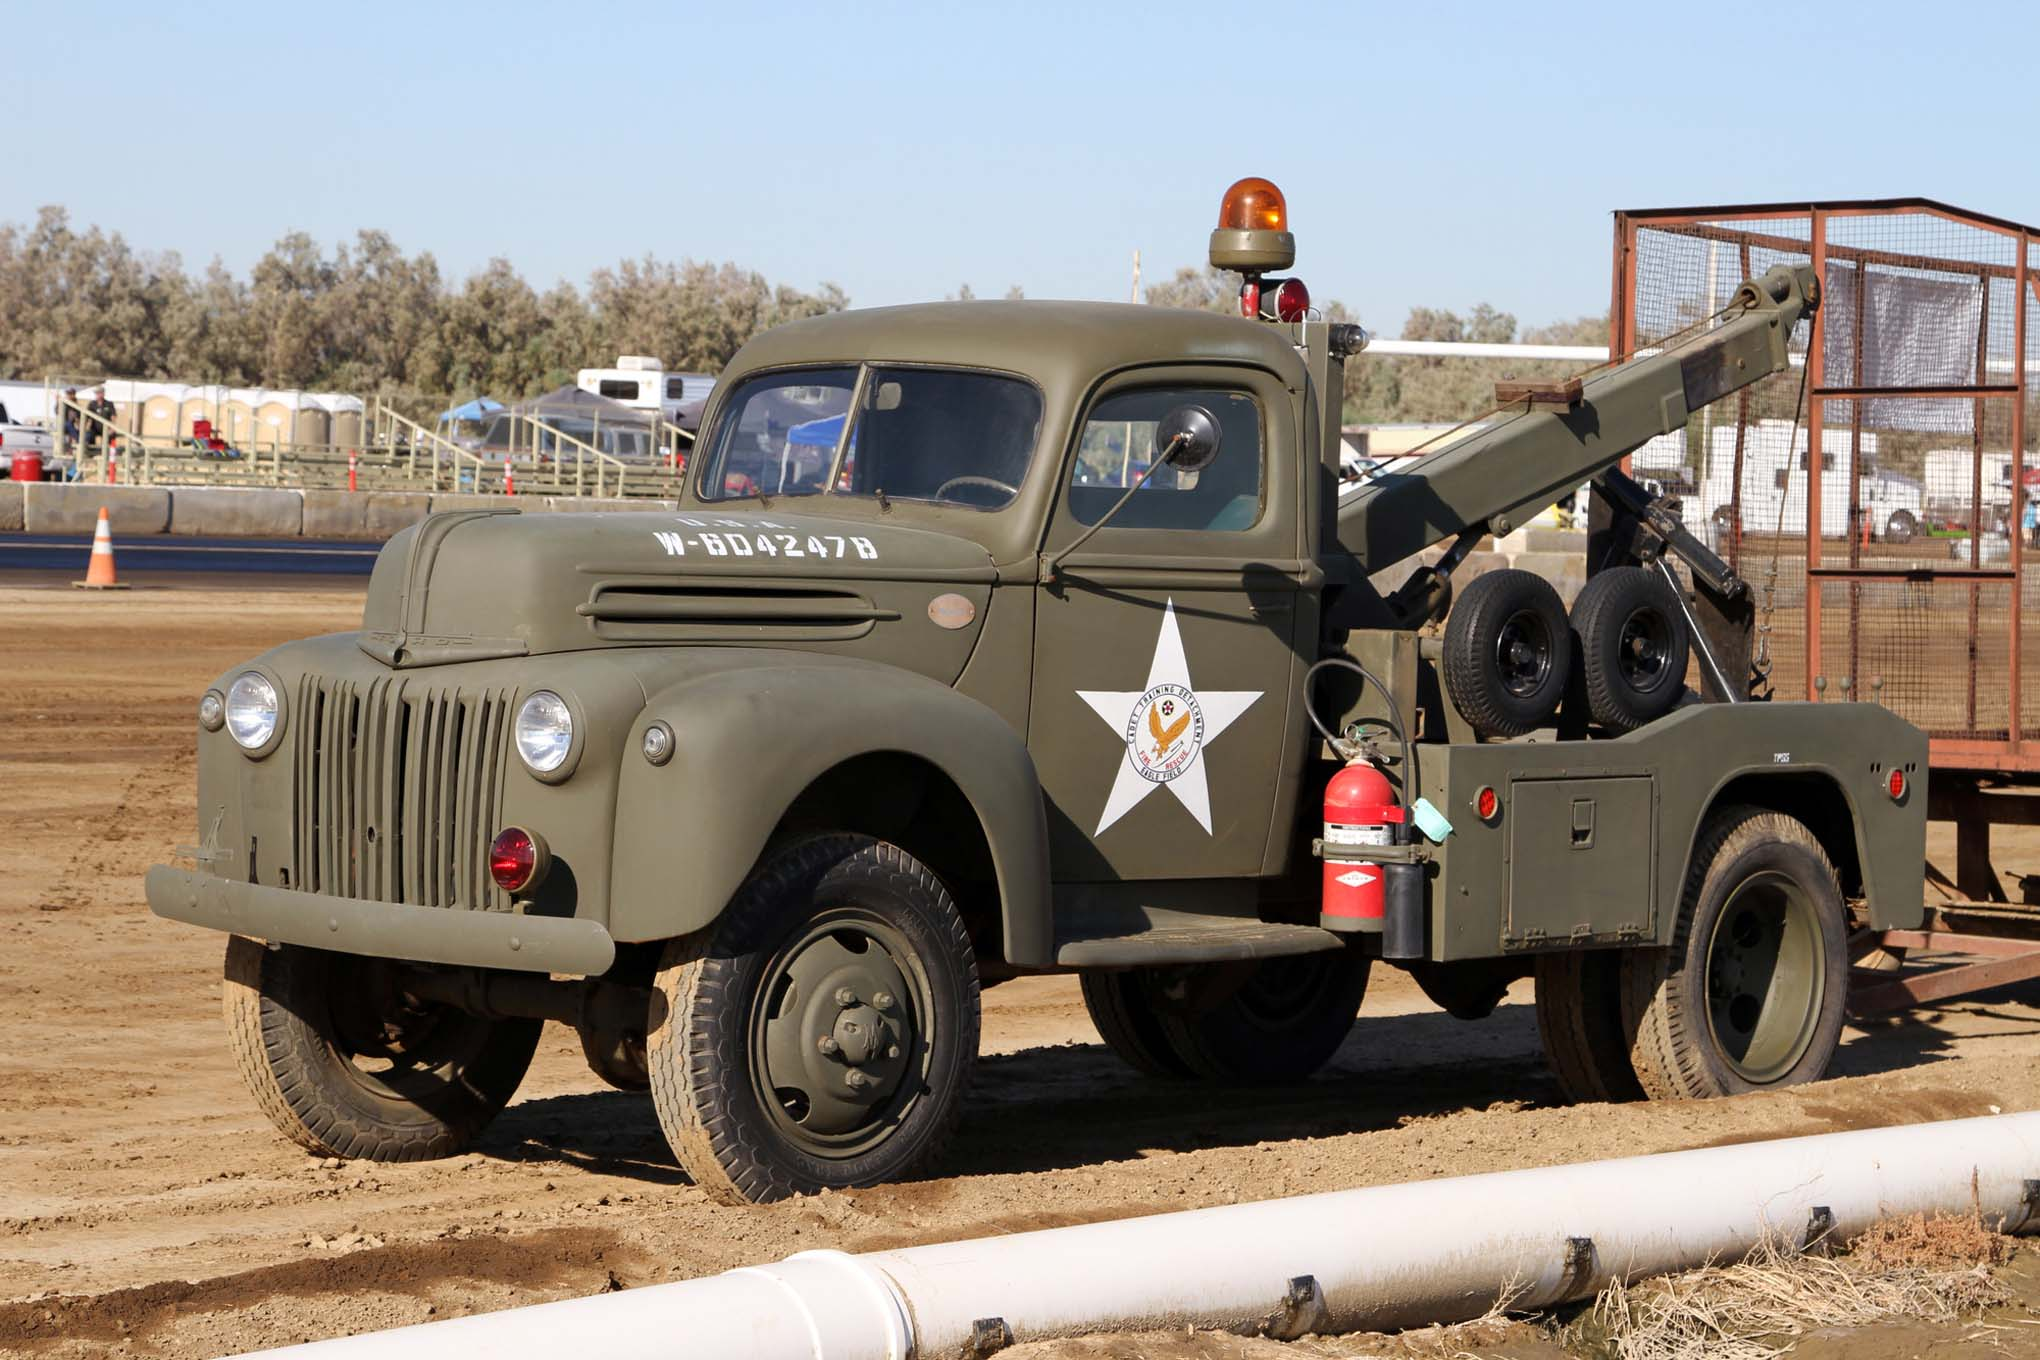 Most of the support vehicles and track equipment at Eagle Field are ex-military vehicles that have been restored, including the newly acquired '44 Ford military tow truck. Fortunately, it was not needed during the event.